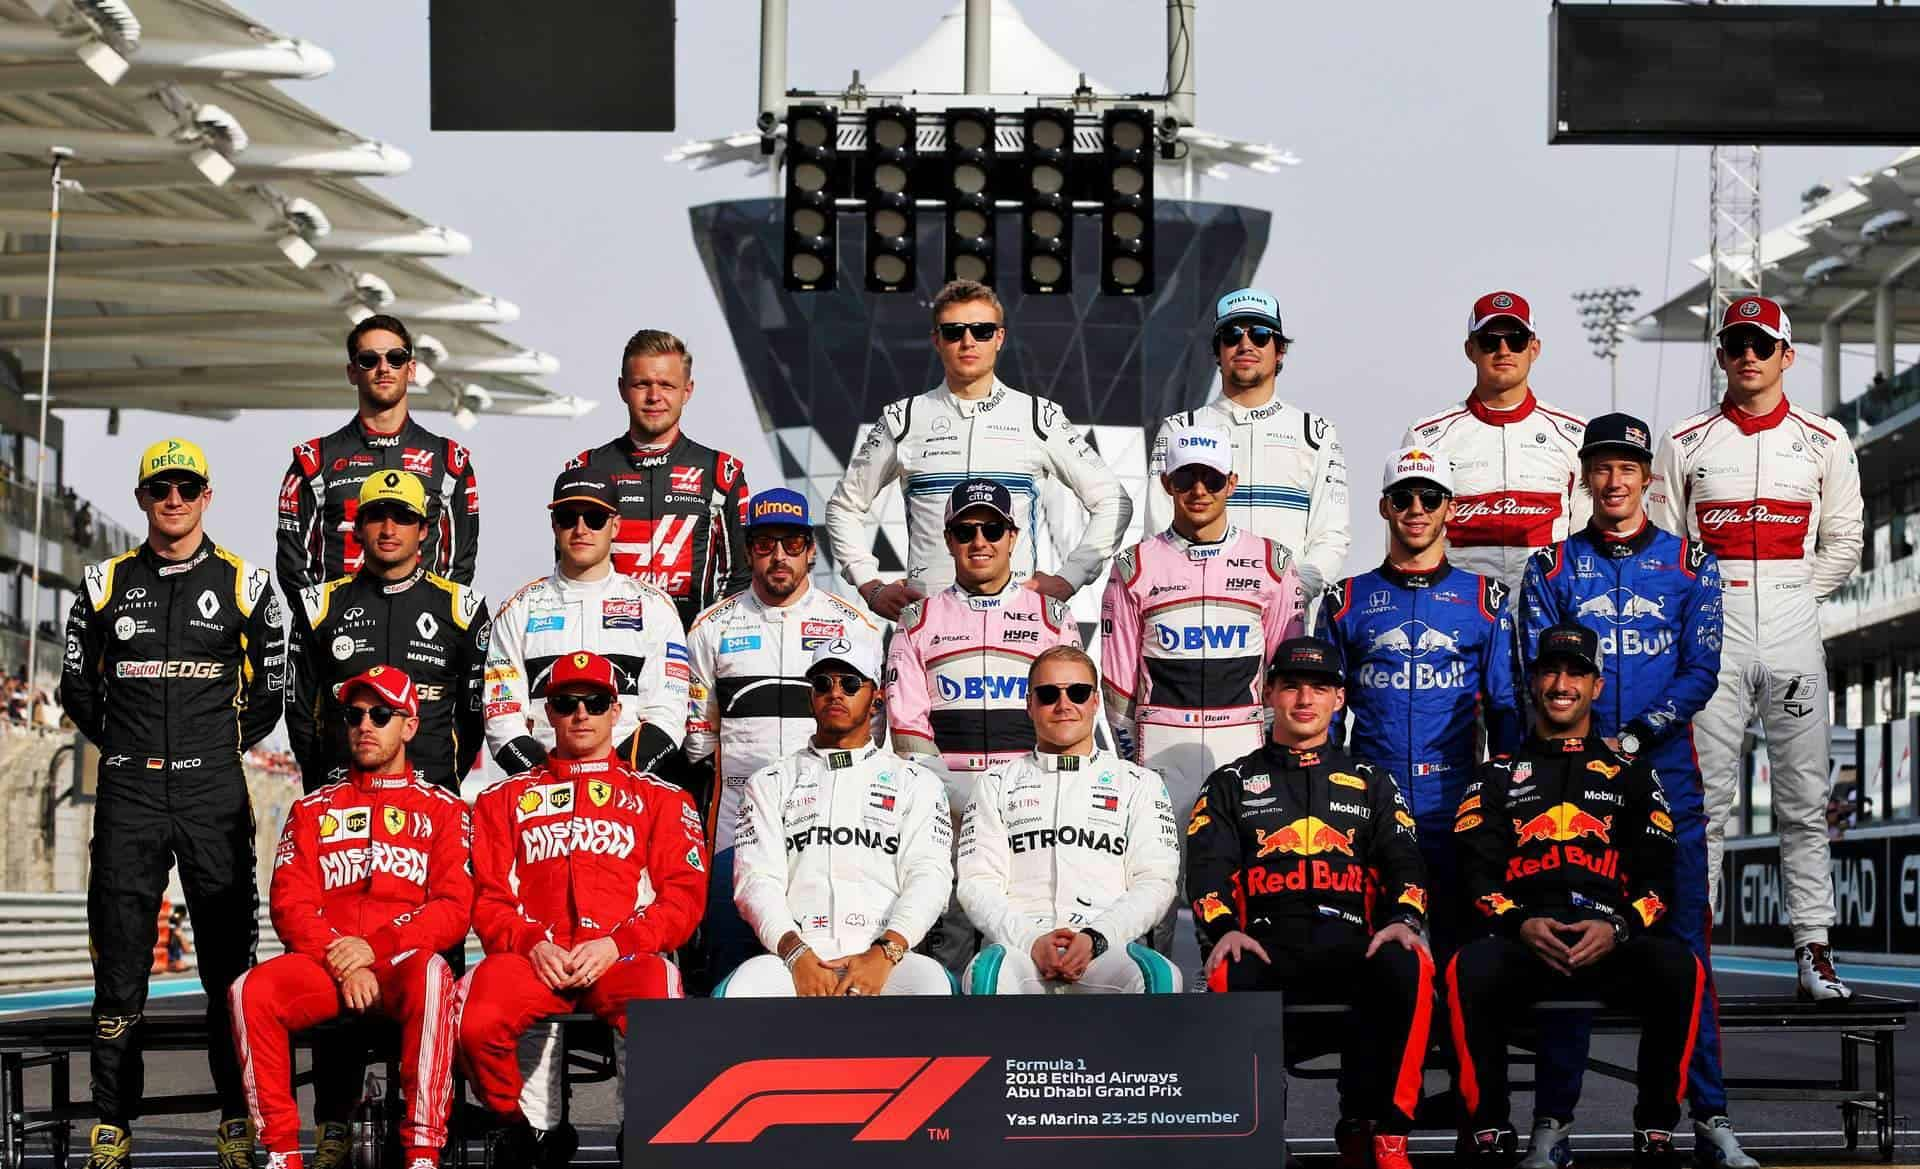 F1 drivers 2018 Abu Dhabi final GP of the season